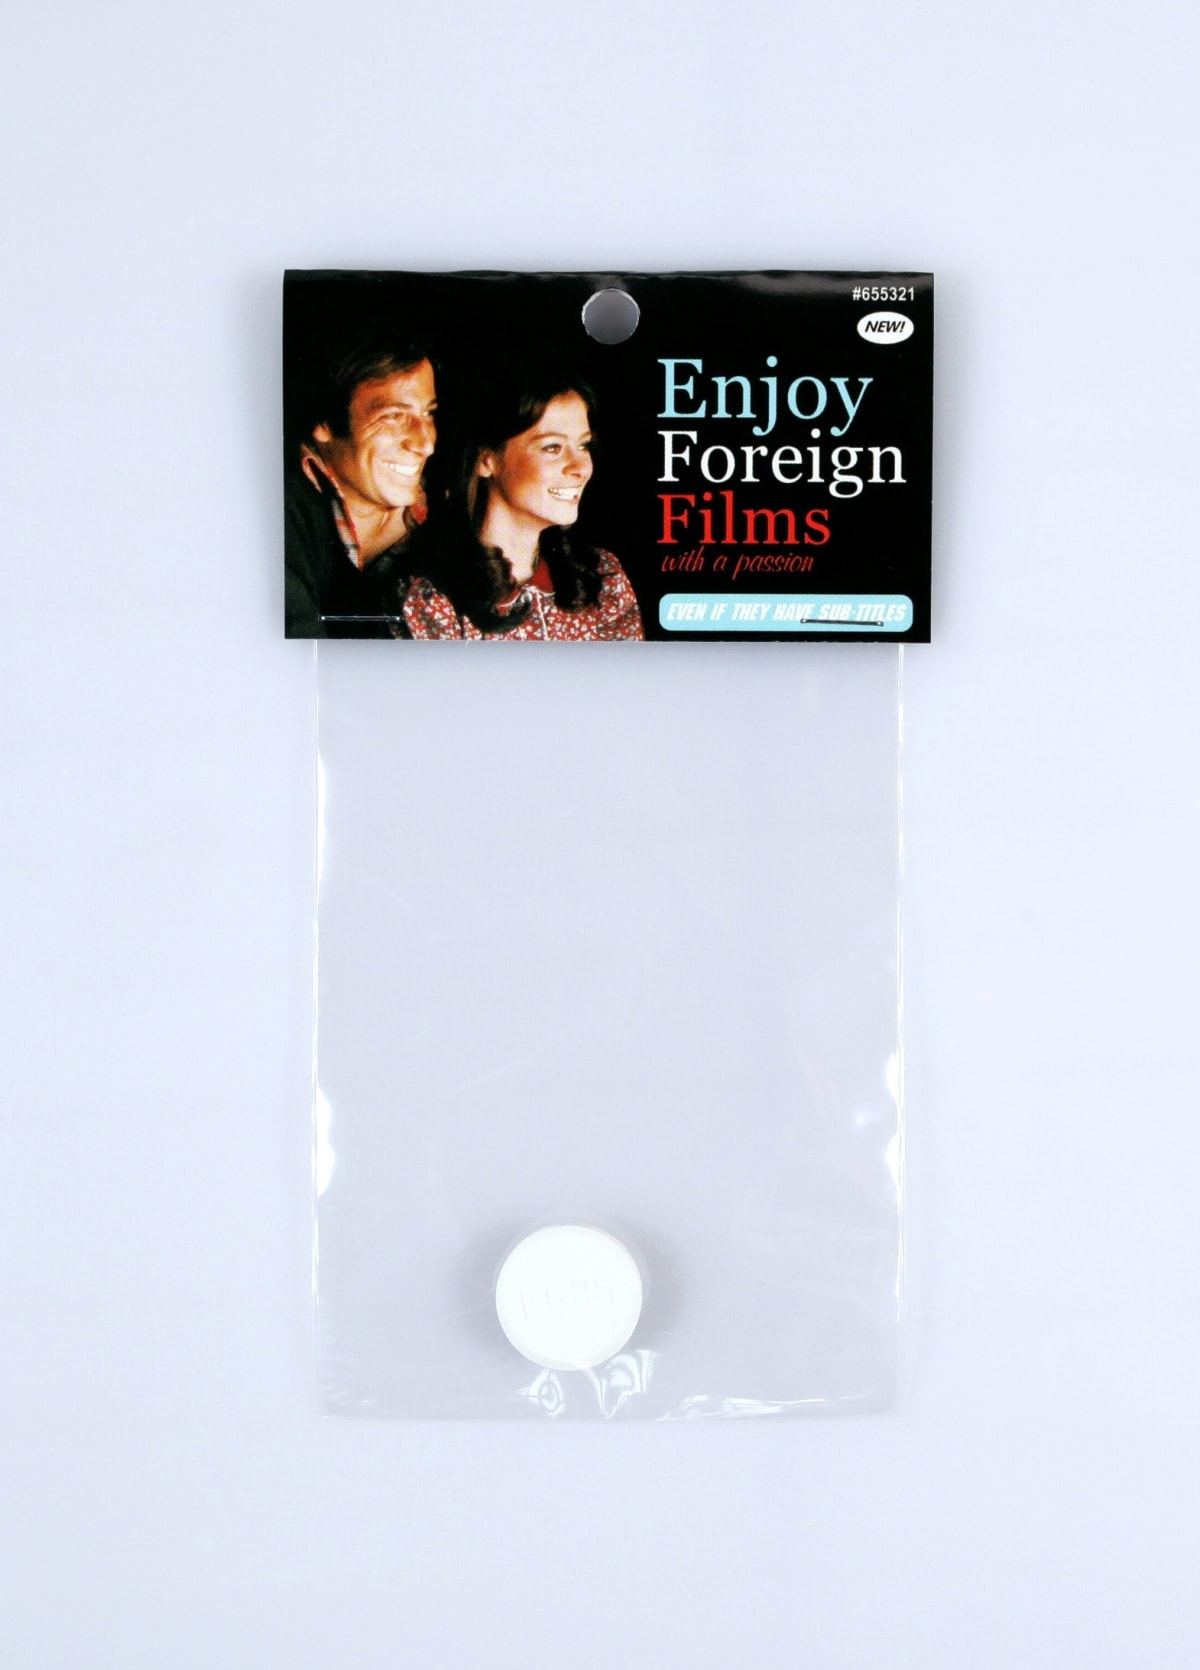 Enjoy foreign films